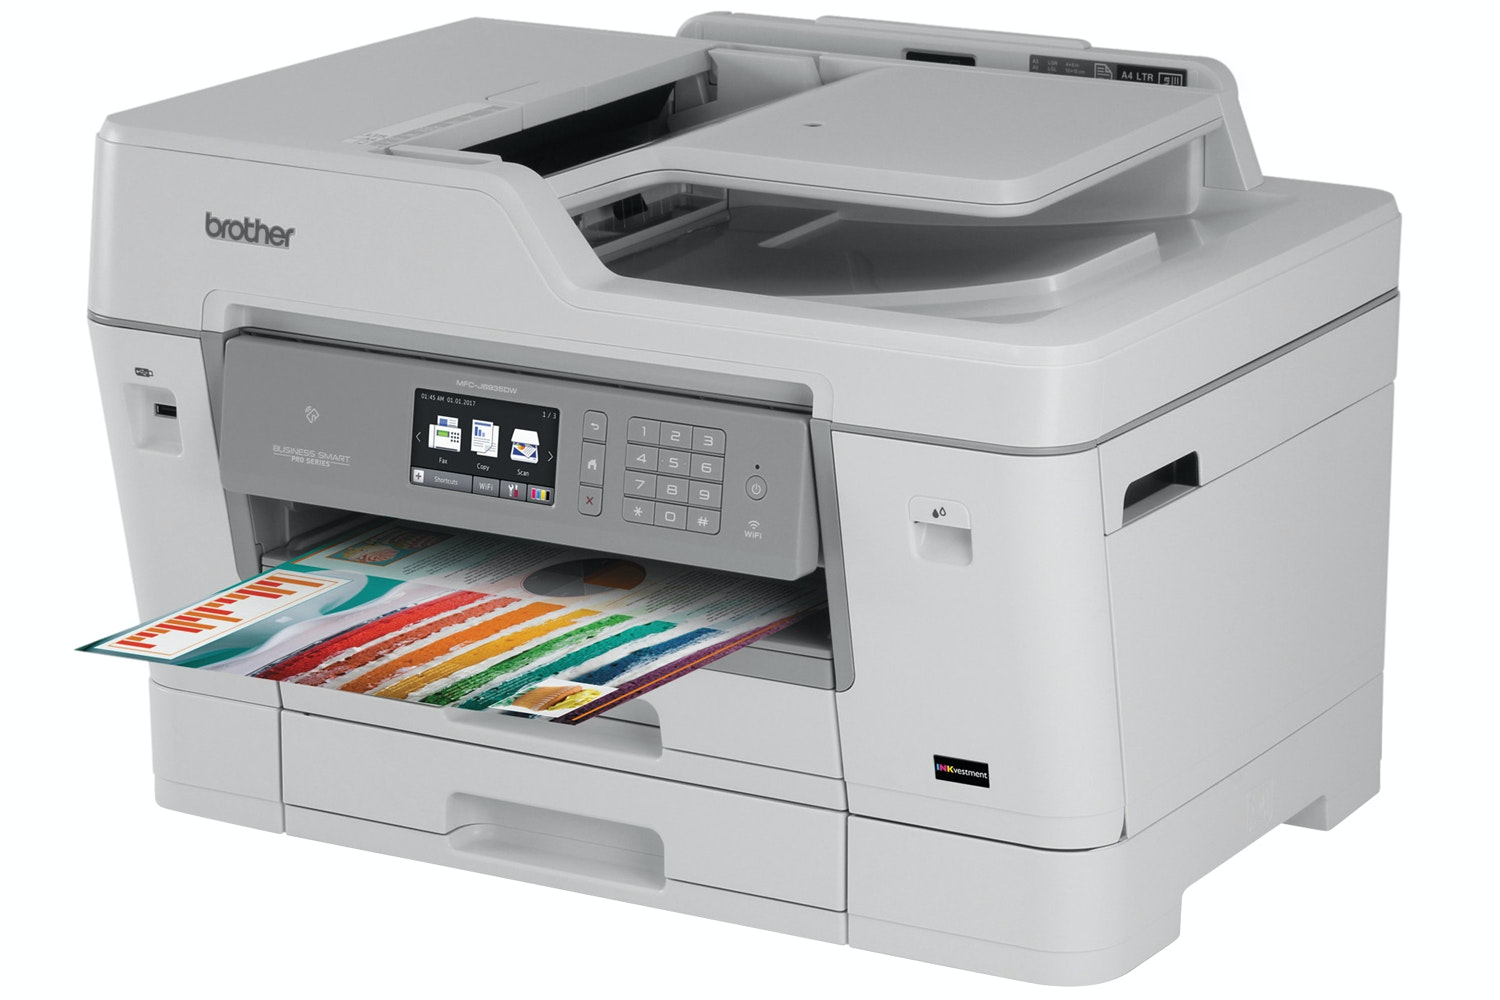 Brother Multfunction Inkjet Printer